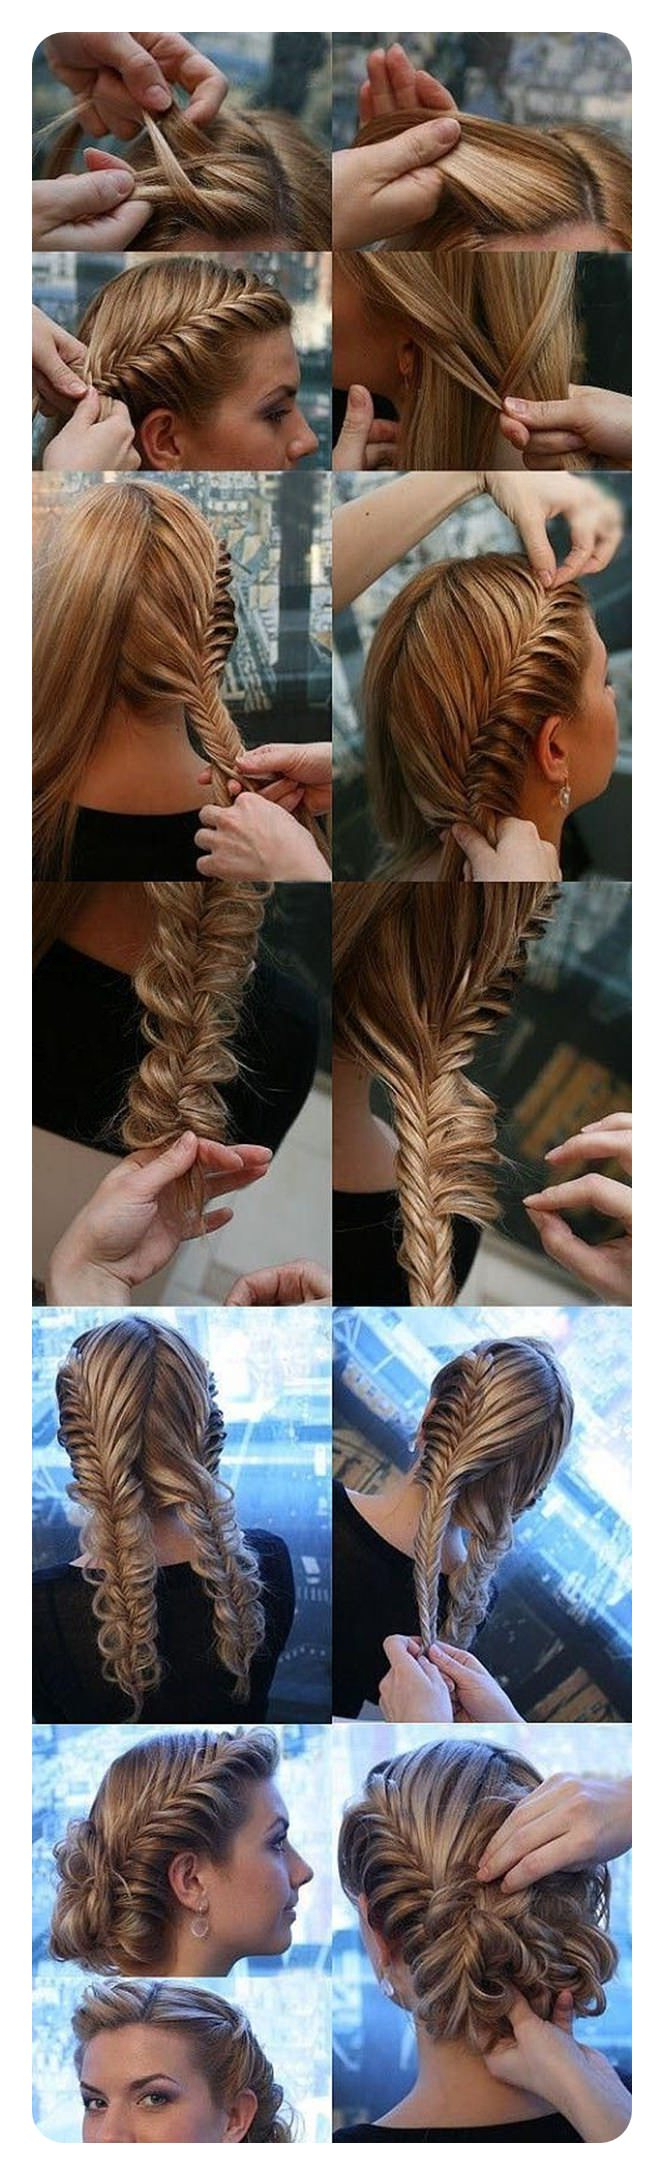 Famous Messy Side Fishtail Braided Hairstyles In 104 Fishtail Braids Hairstyles That Turn Heads (View 9 of 20)